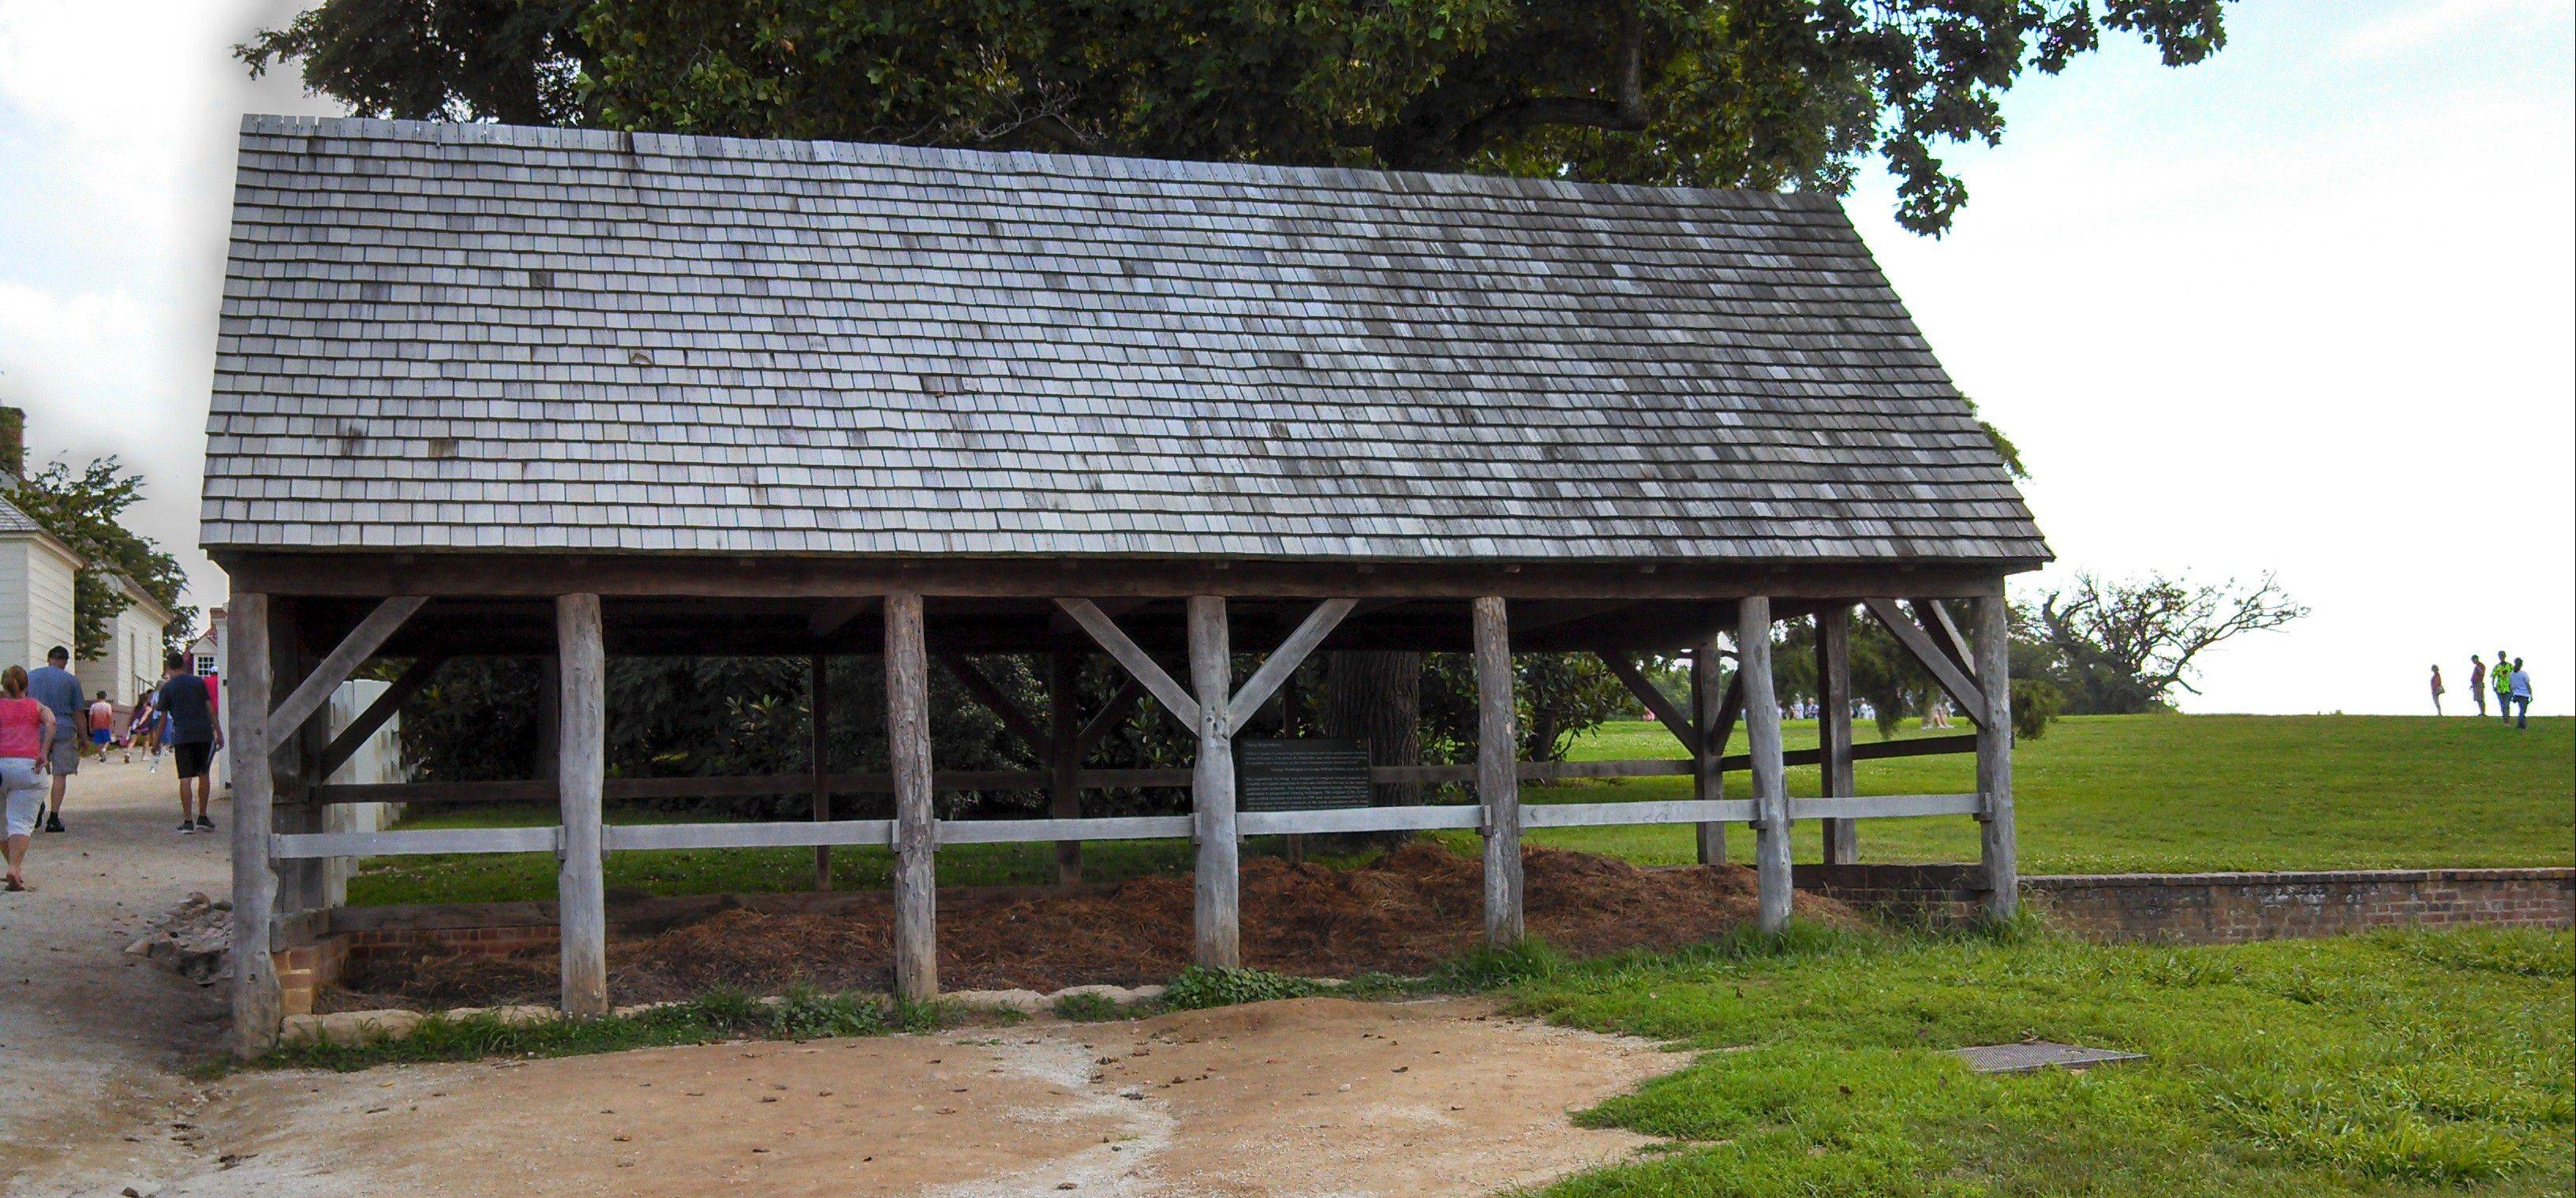 "The recreated ""stercorary"" used by George Washington at Mount Vernon reaches 8 feet into the ground and holds manure and plant waste, capturing the nutrients so they can be returned to the soil -- what we would call composting today."